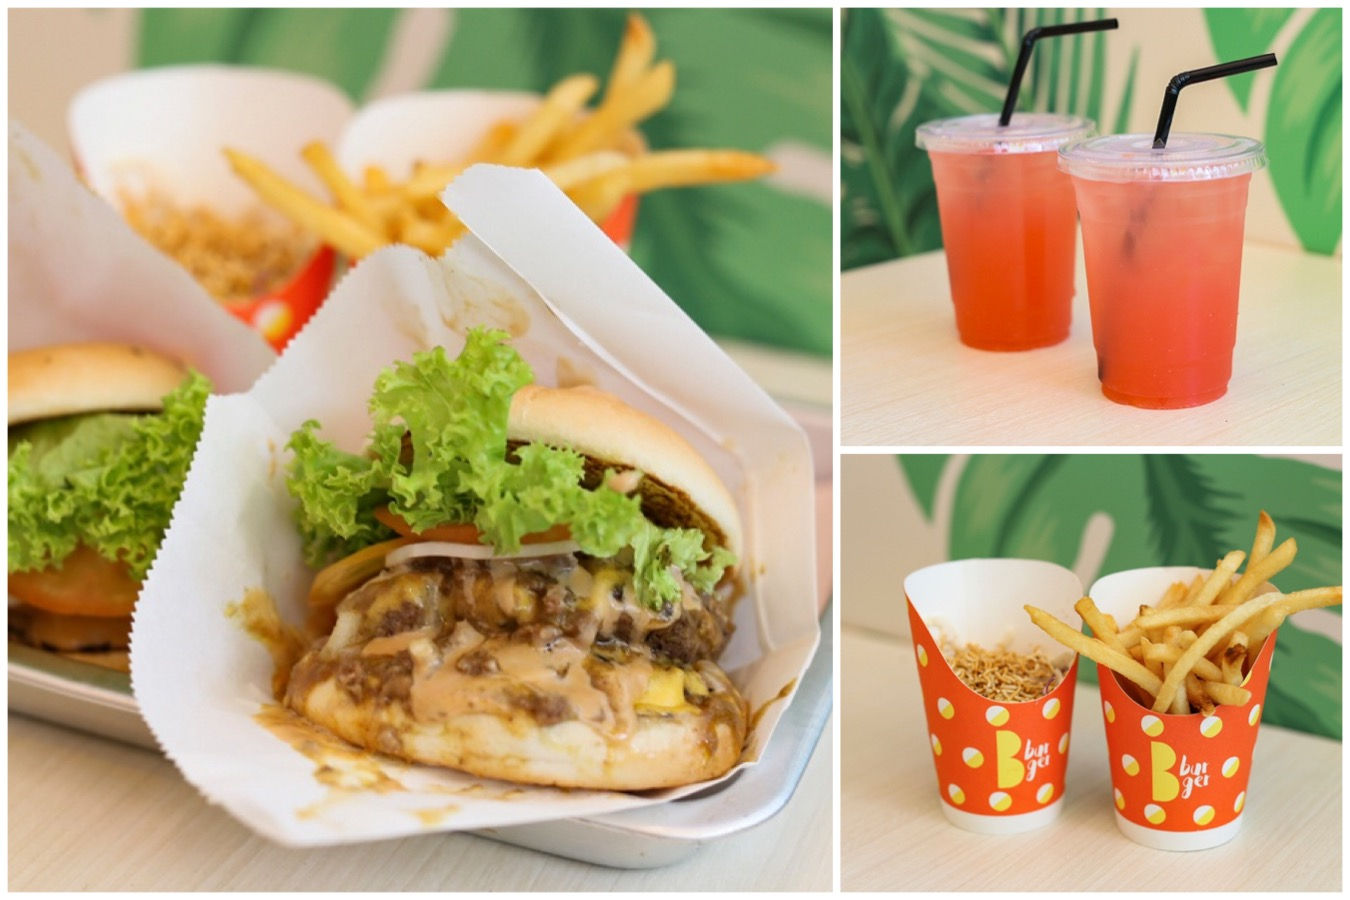 [Closing] B Burger - Benjamin Barker Burgers With Japanese Flavours At Orchard Cineleisure. Closing 1st May